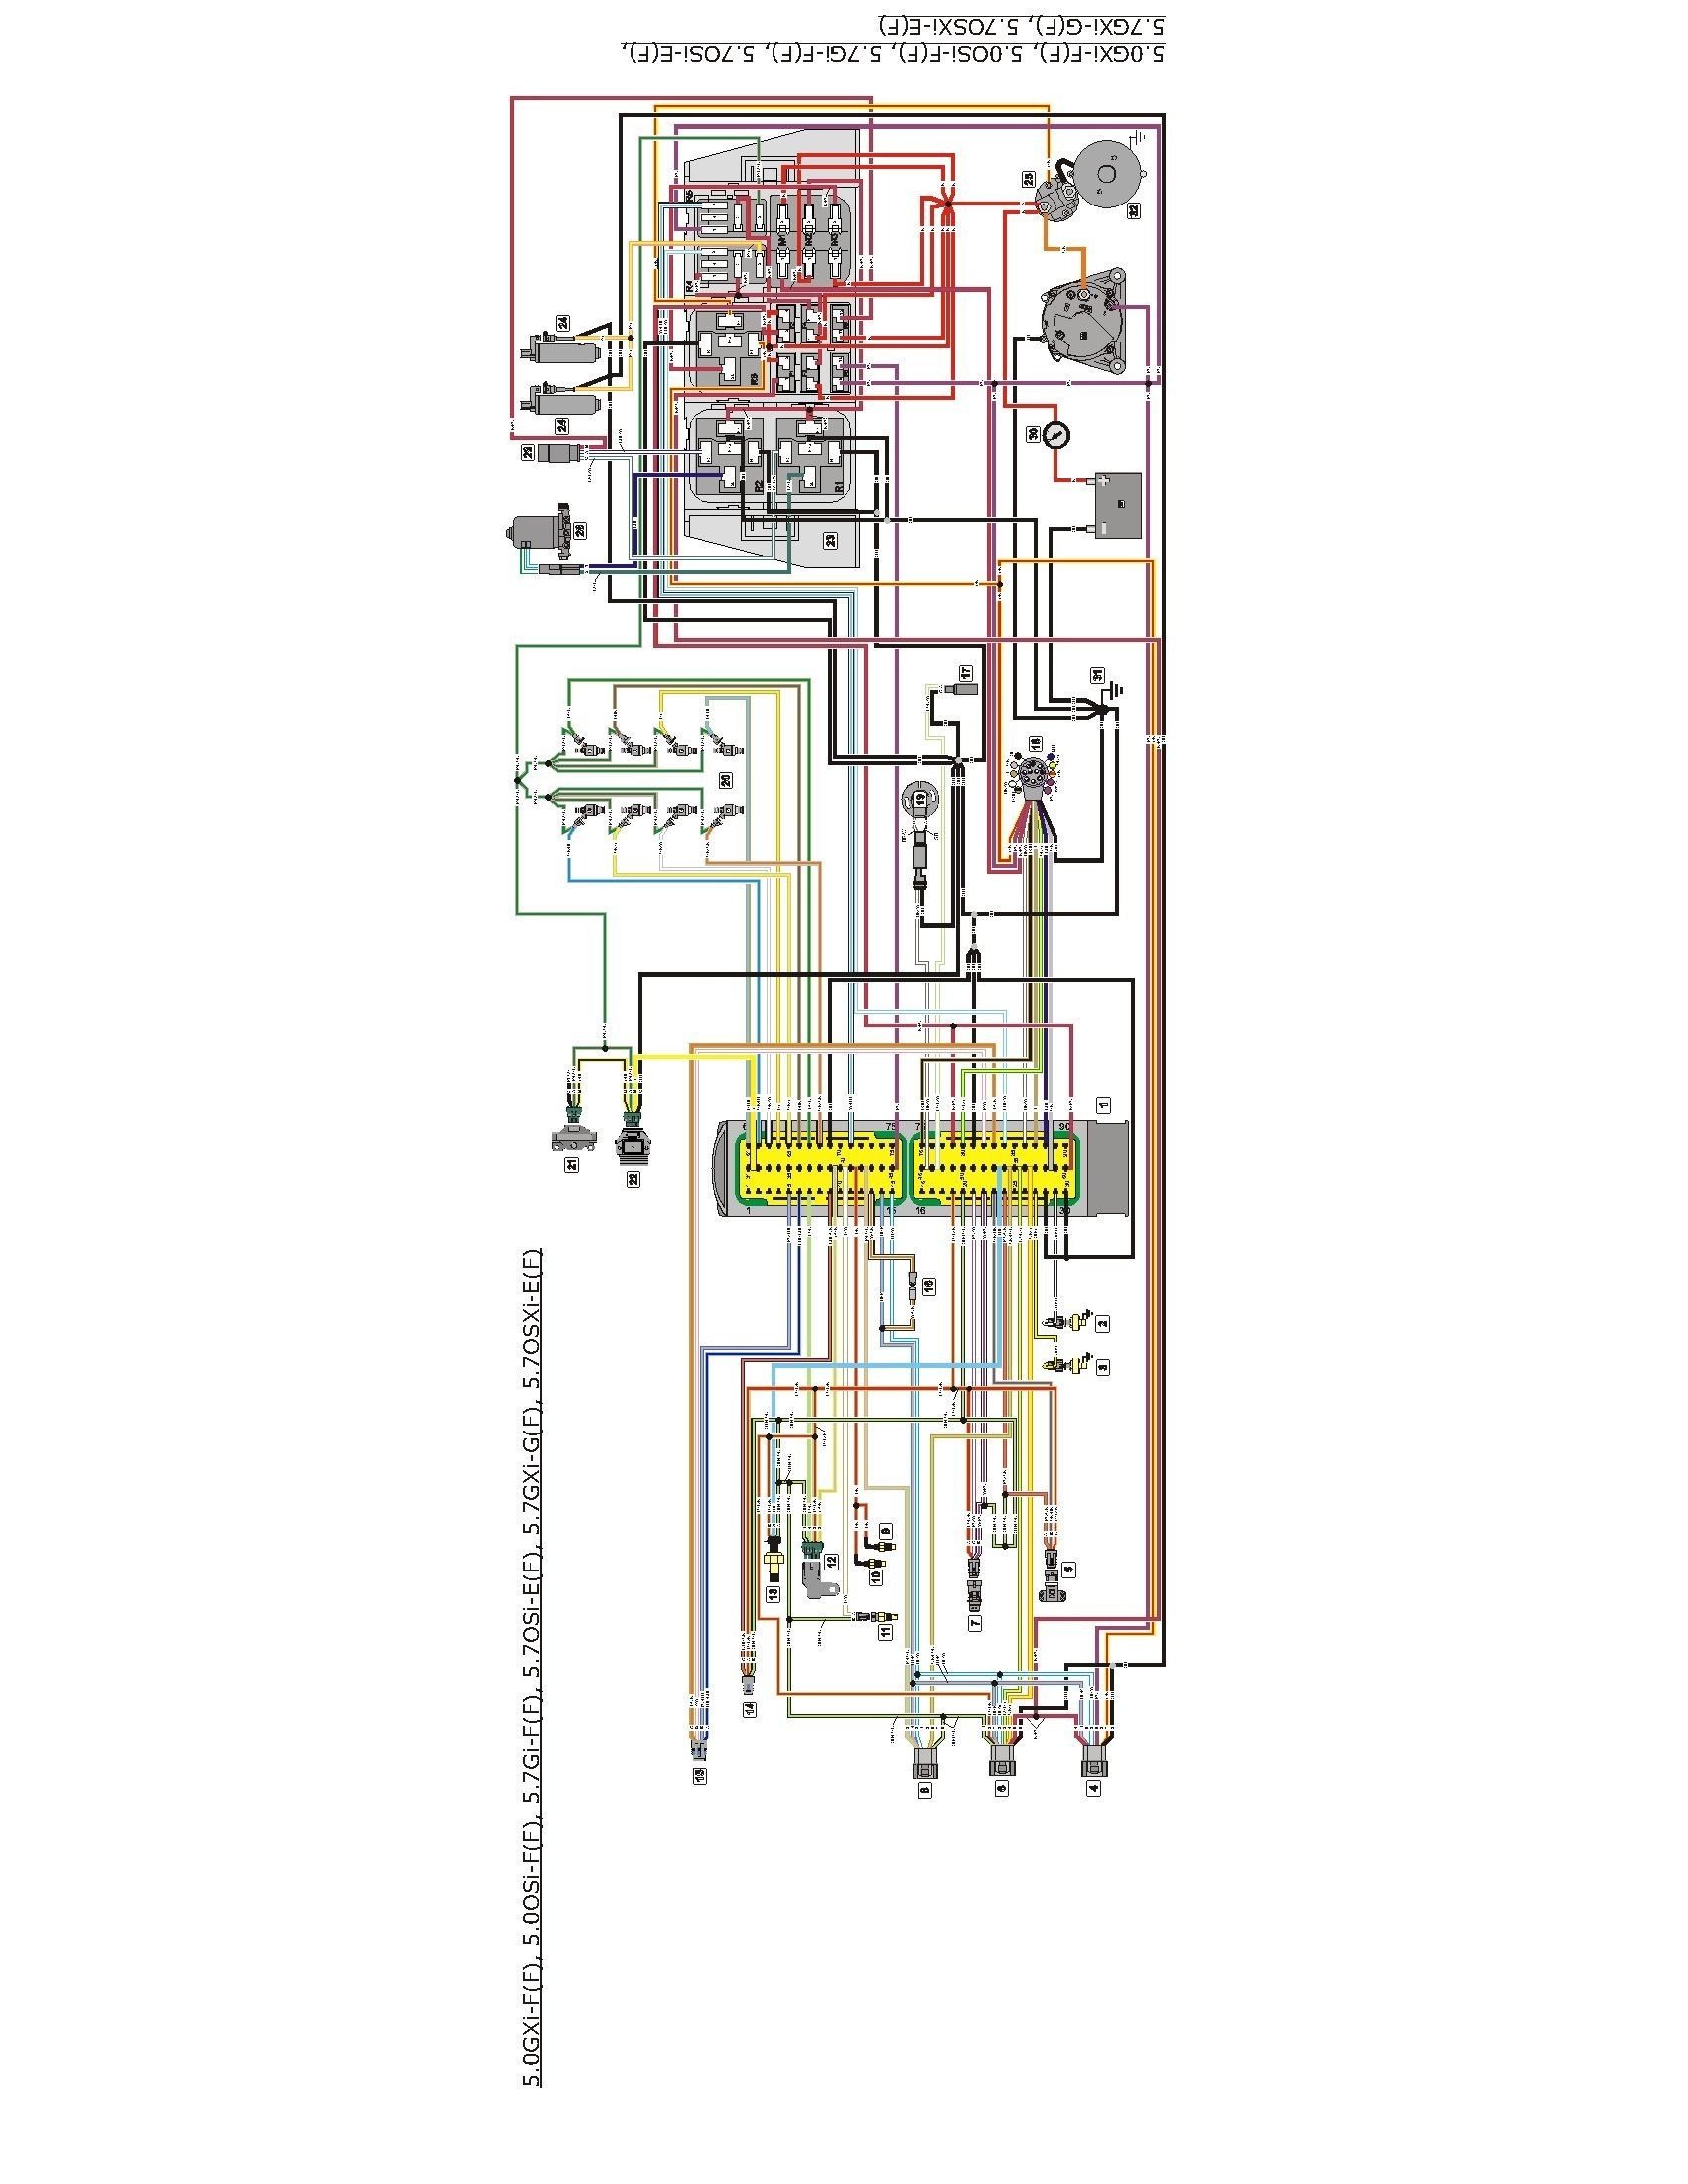 volvo penta 3 0 gs wiring diagram - wiring diagram system thanks-norm -  thanks-norm.ediliadesign.it  ediliadesign.it